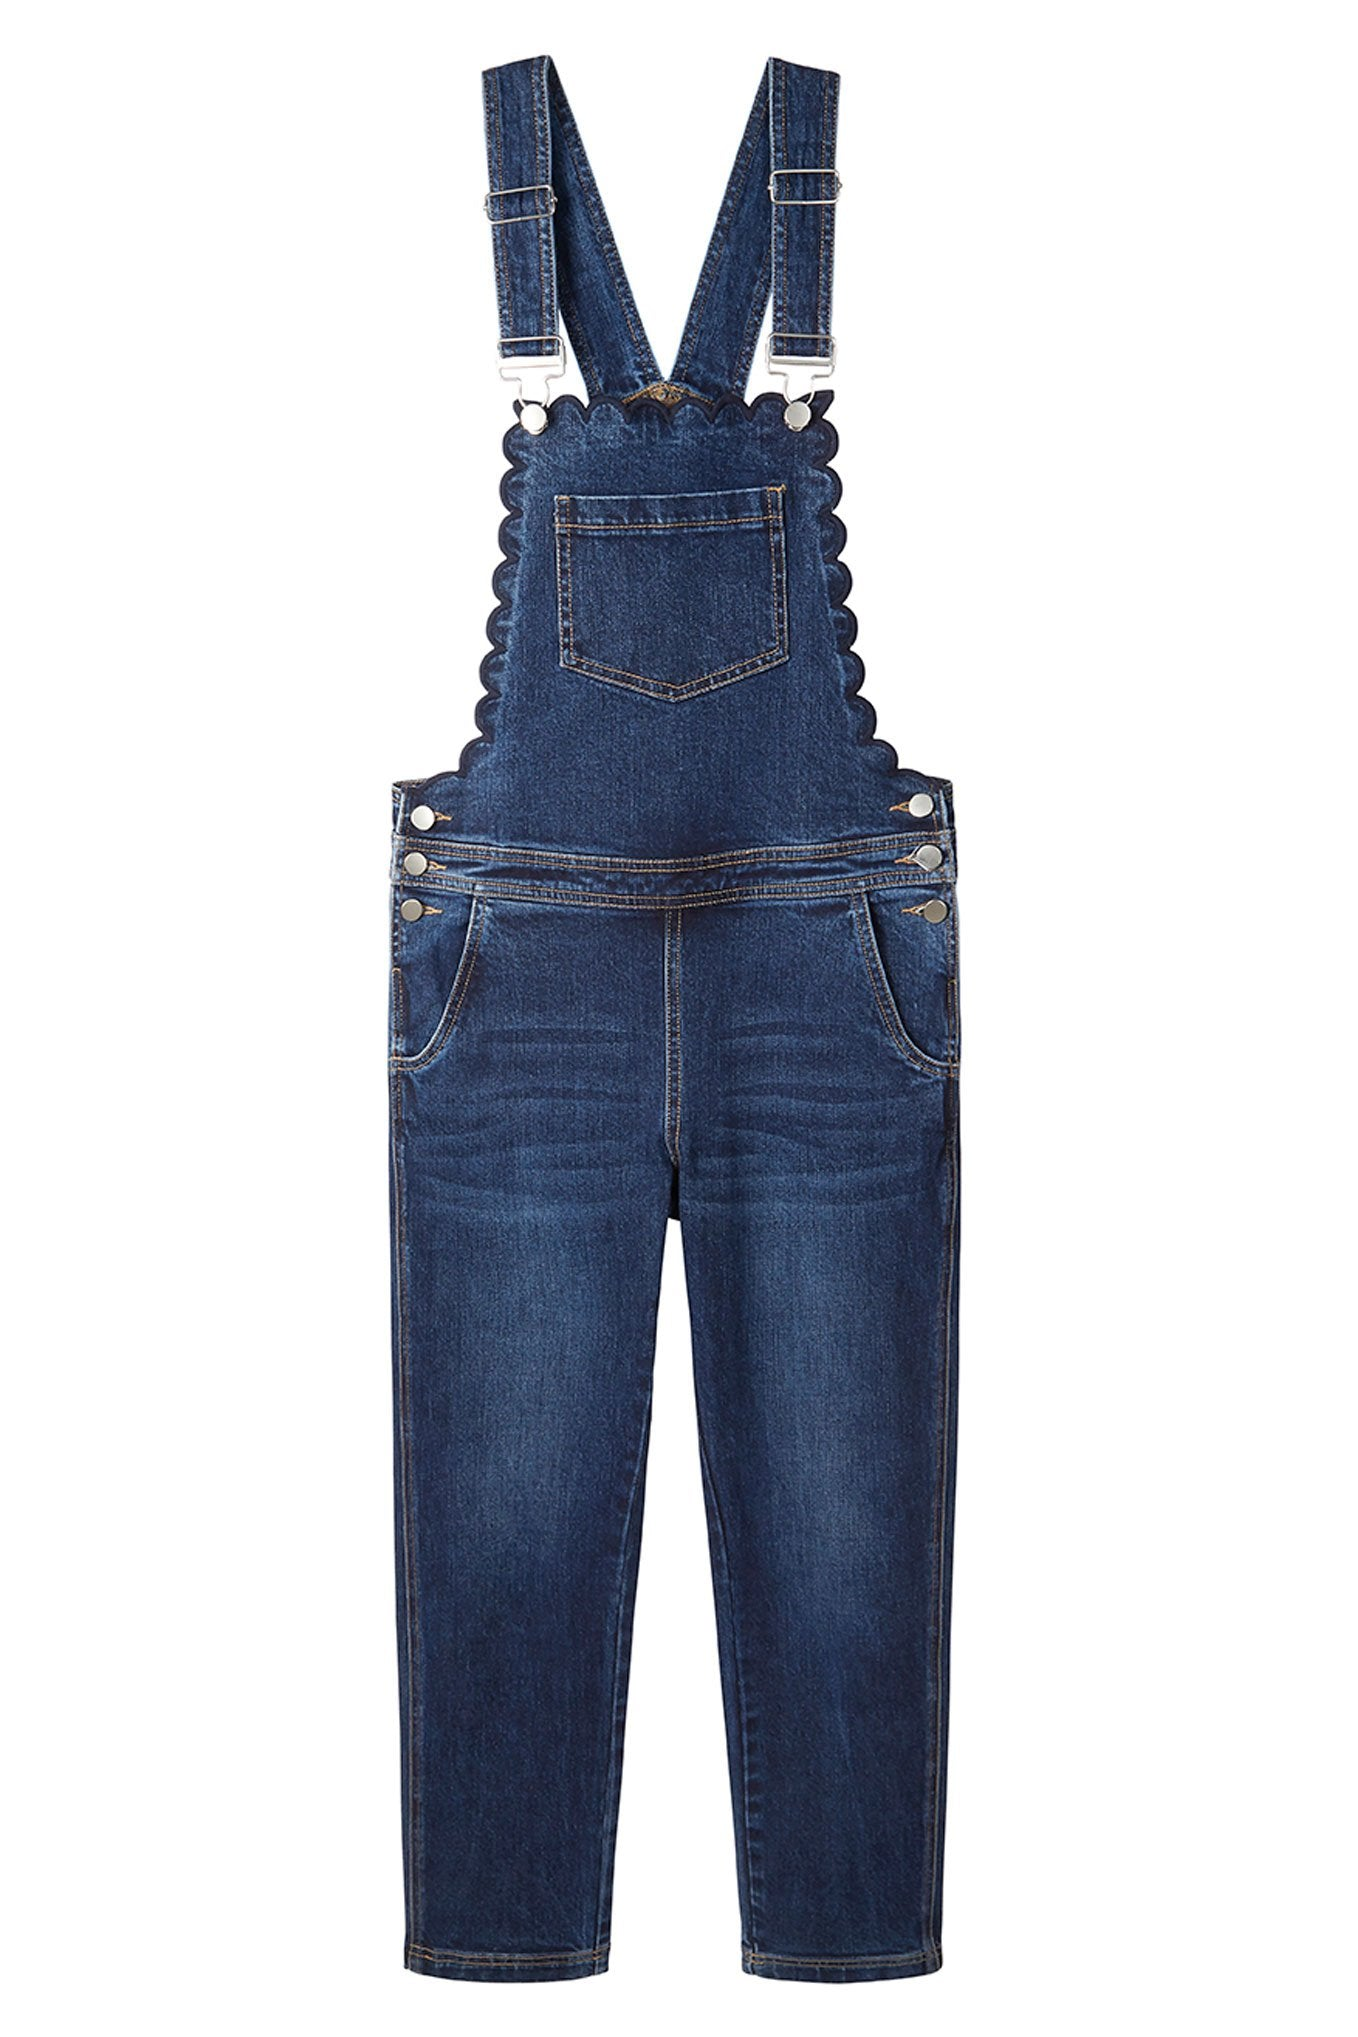 Scarlett Scallop Longer Length Dungarees - Rinse